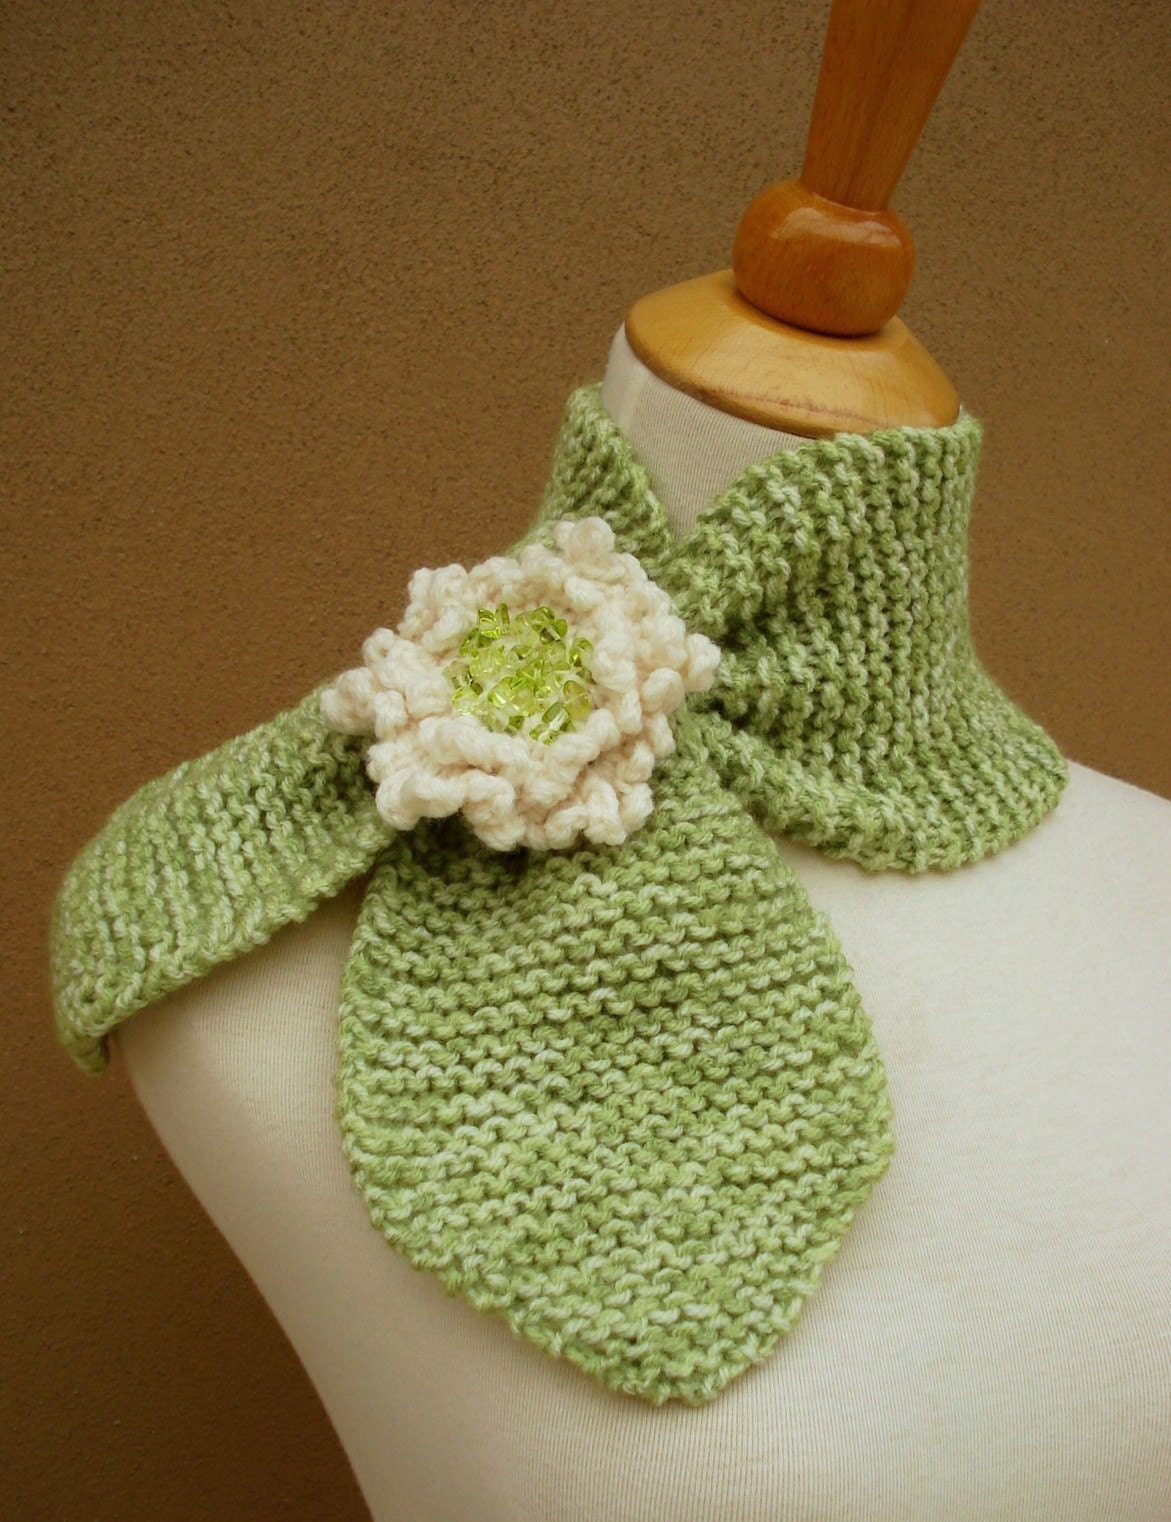 Green knit scarflette with white brooch, via Etsy: gsakowskidesigns